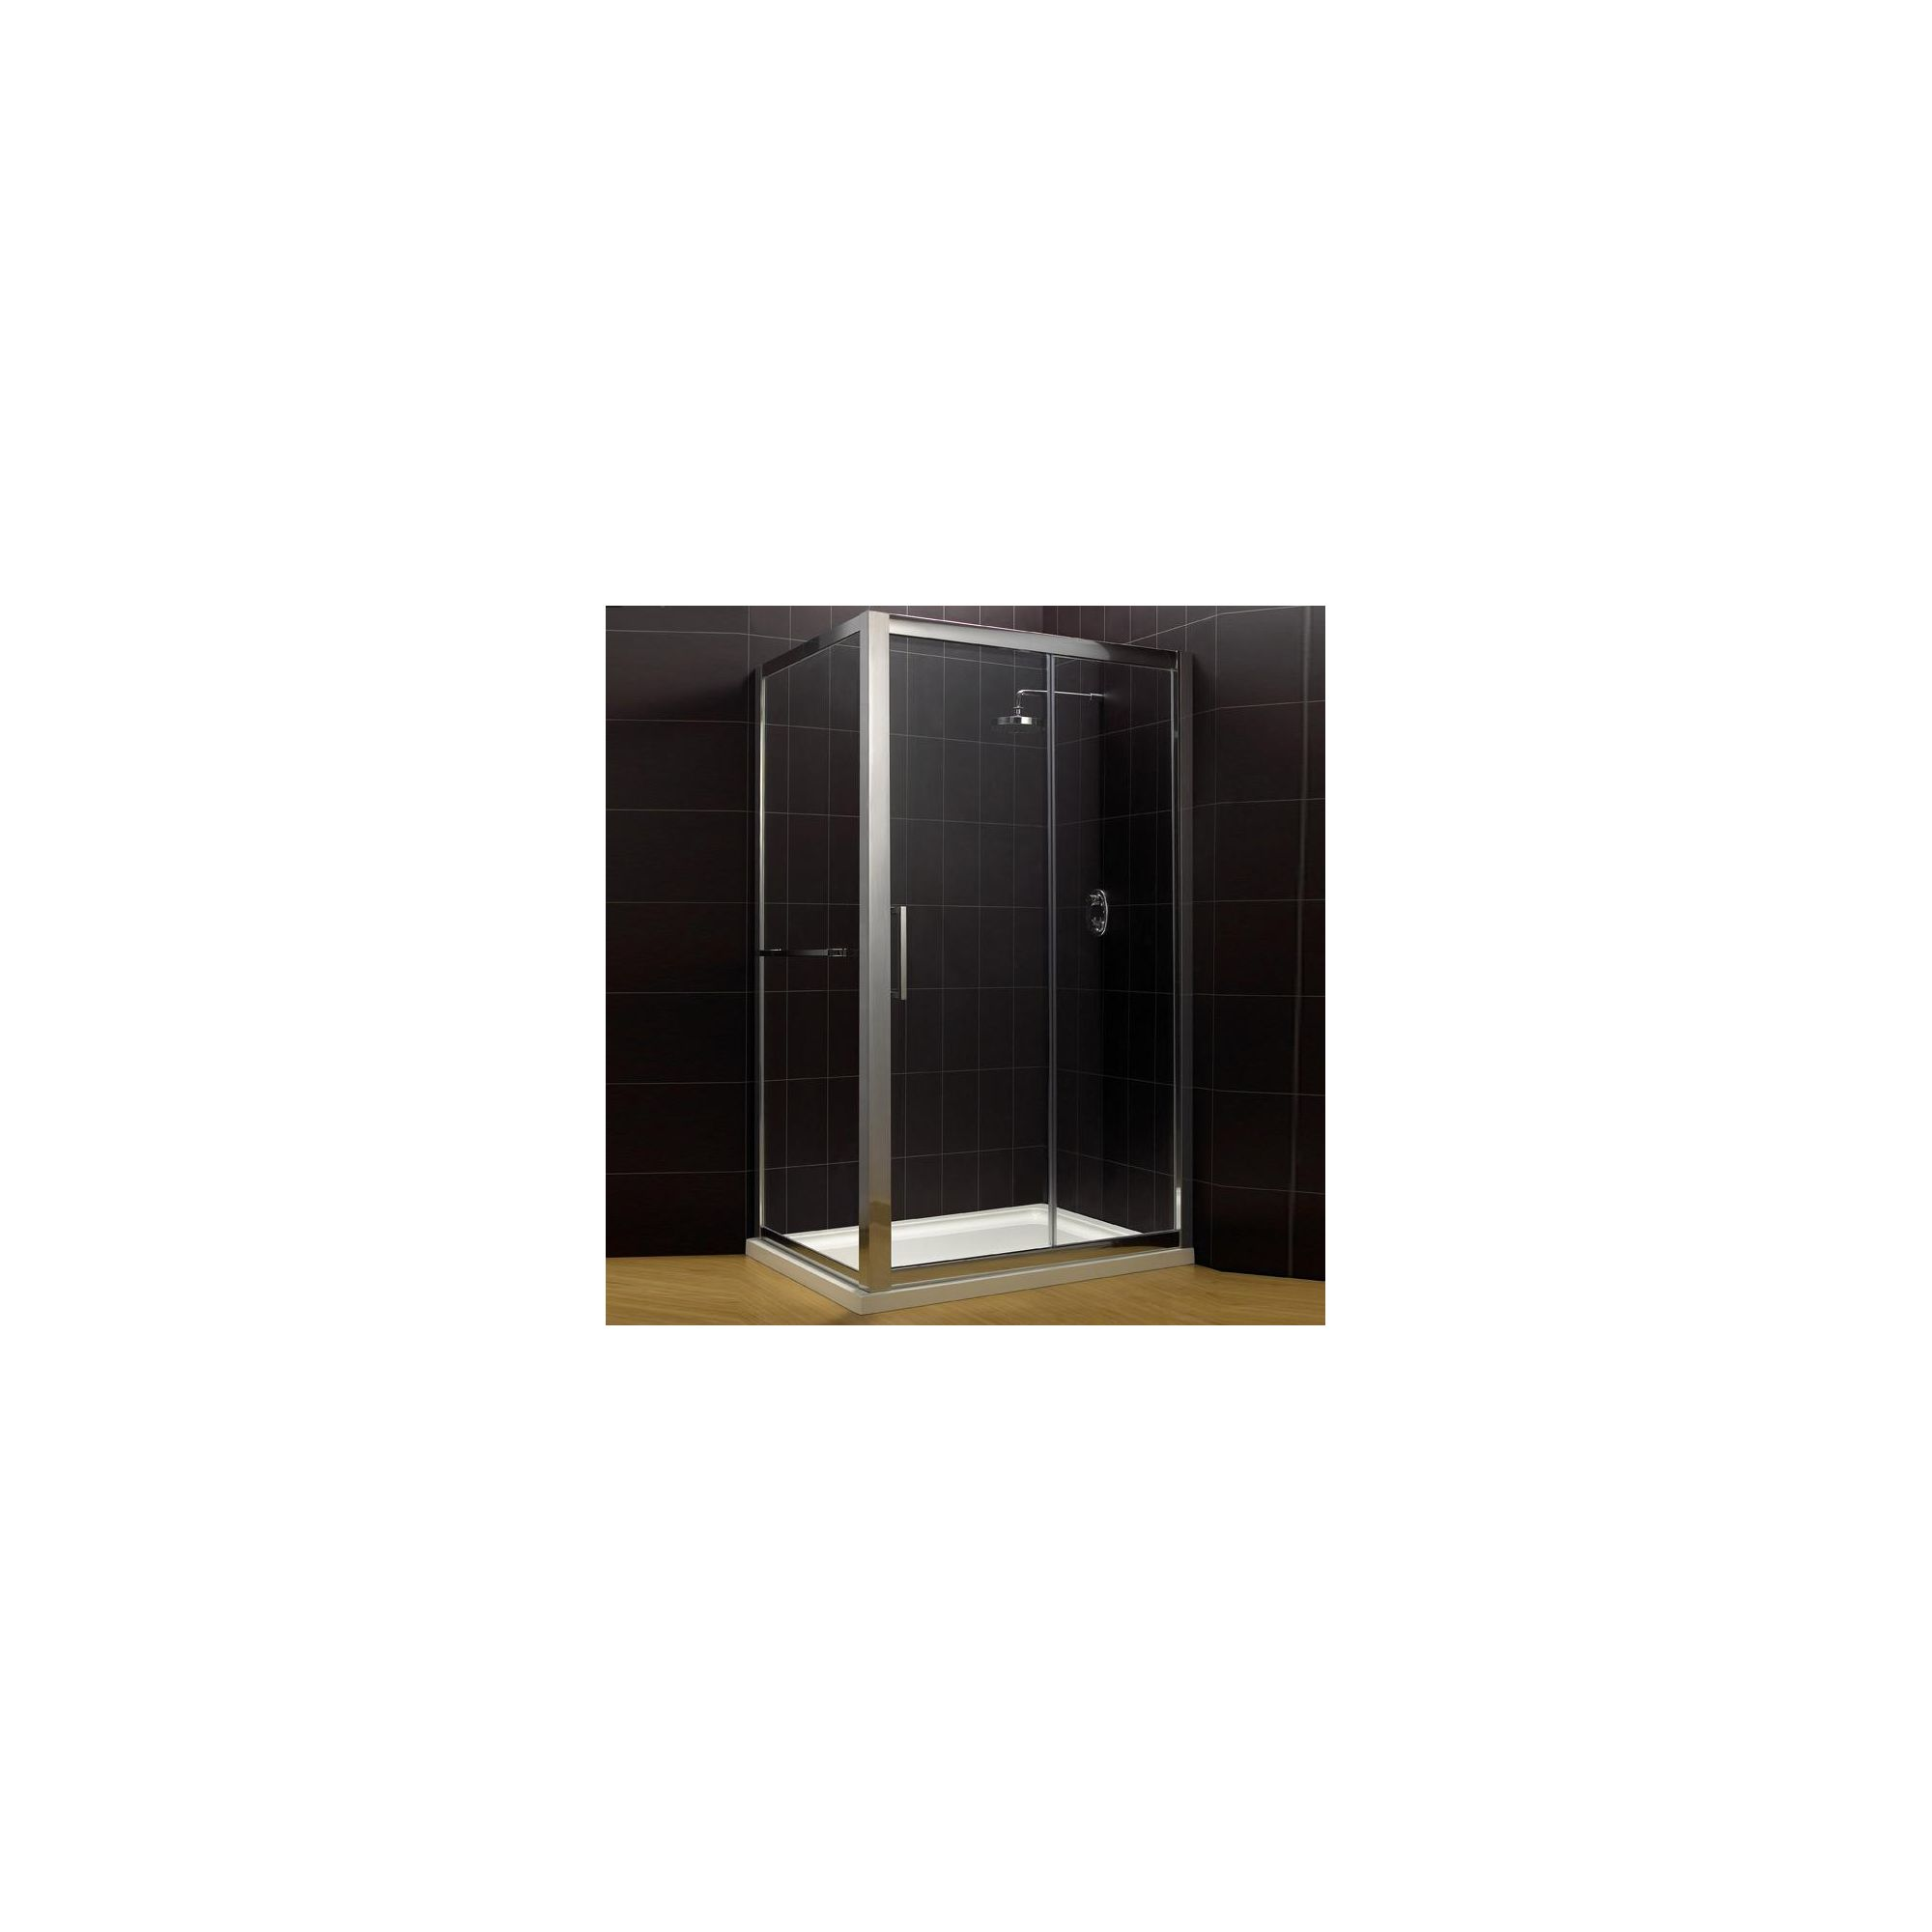 Duchy Supreme Silver Sliding Door Shower Enclosure, 1200mm x 700mm, Standard Tray, 8mm Glass at Tesco Direct